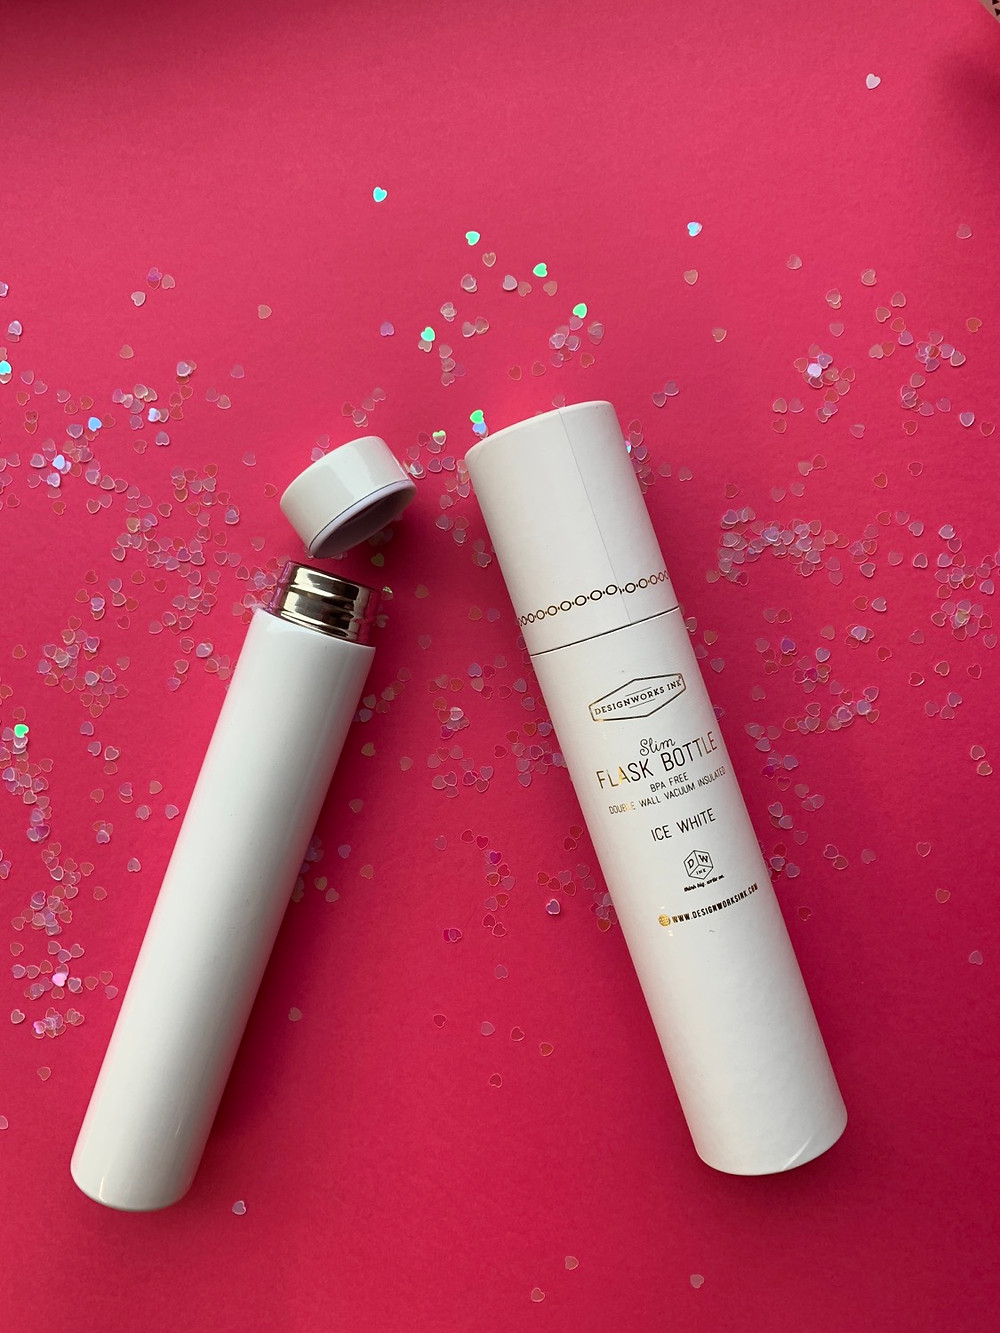 White slimline flask bottle and matching gift packaging